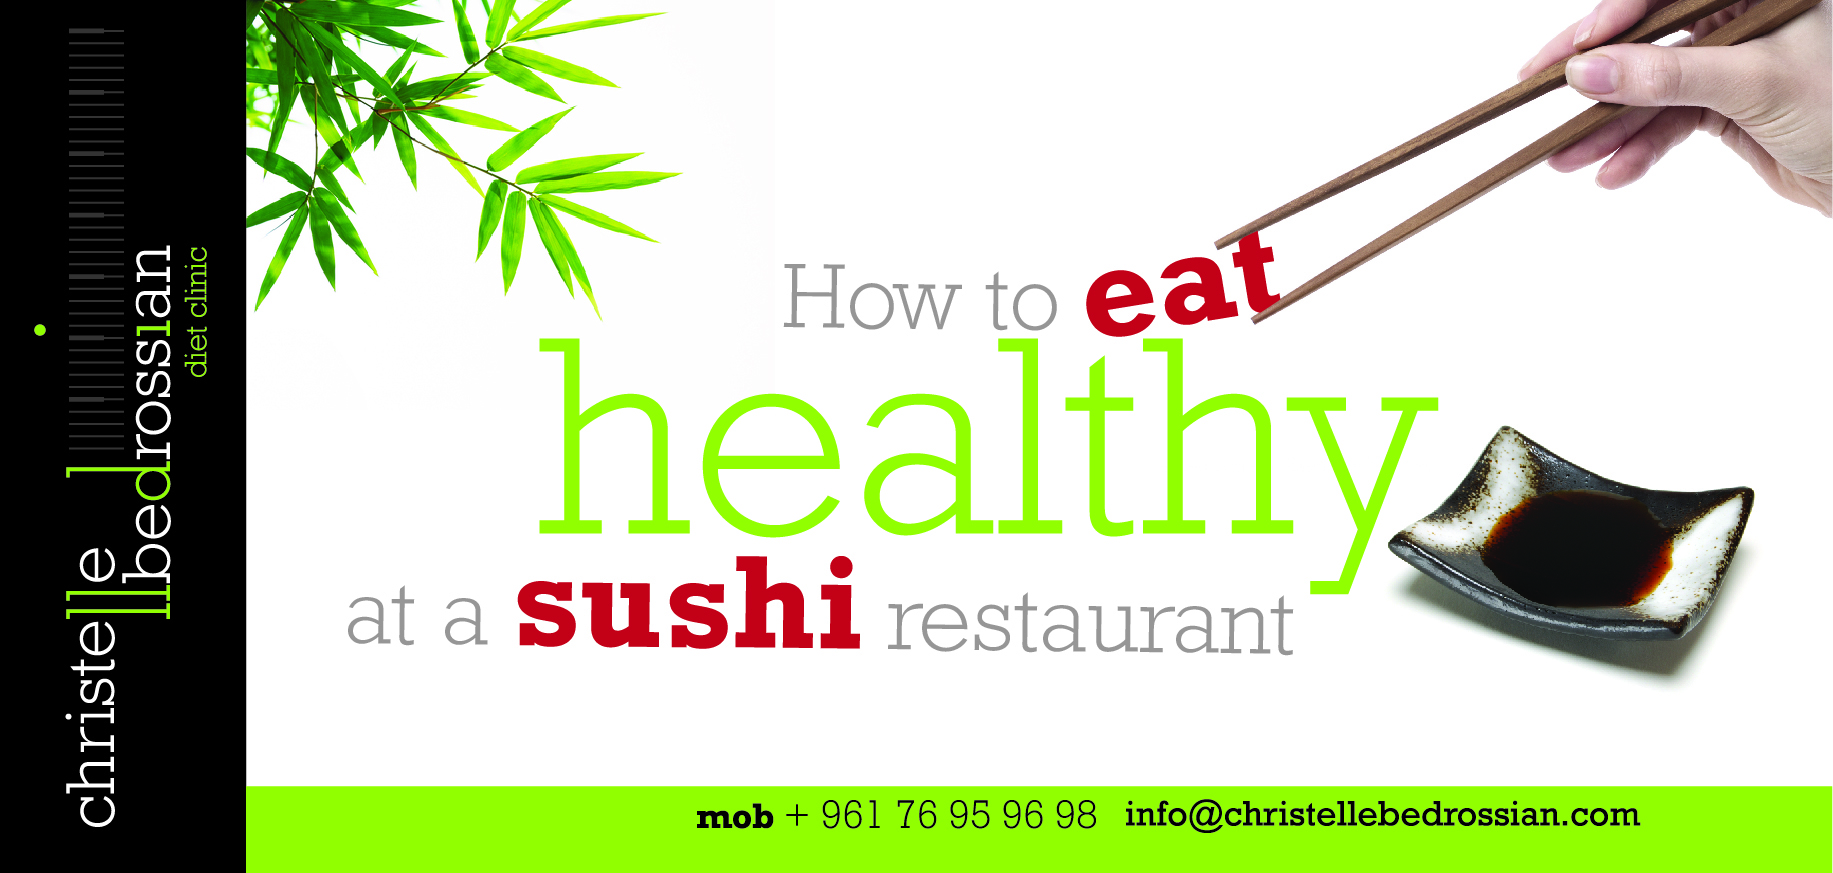 best dietitian lebanon, lebanon, diet, diet clinic, lose weight lebanon, health, tips, sushi